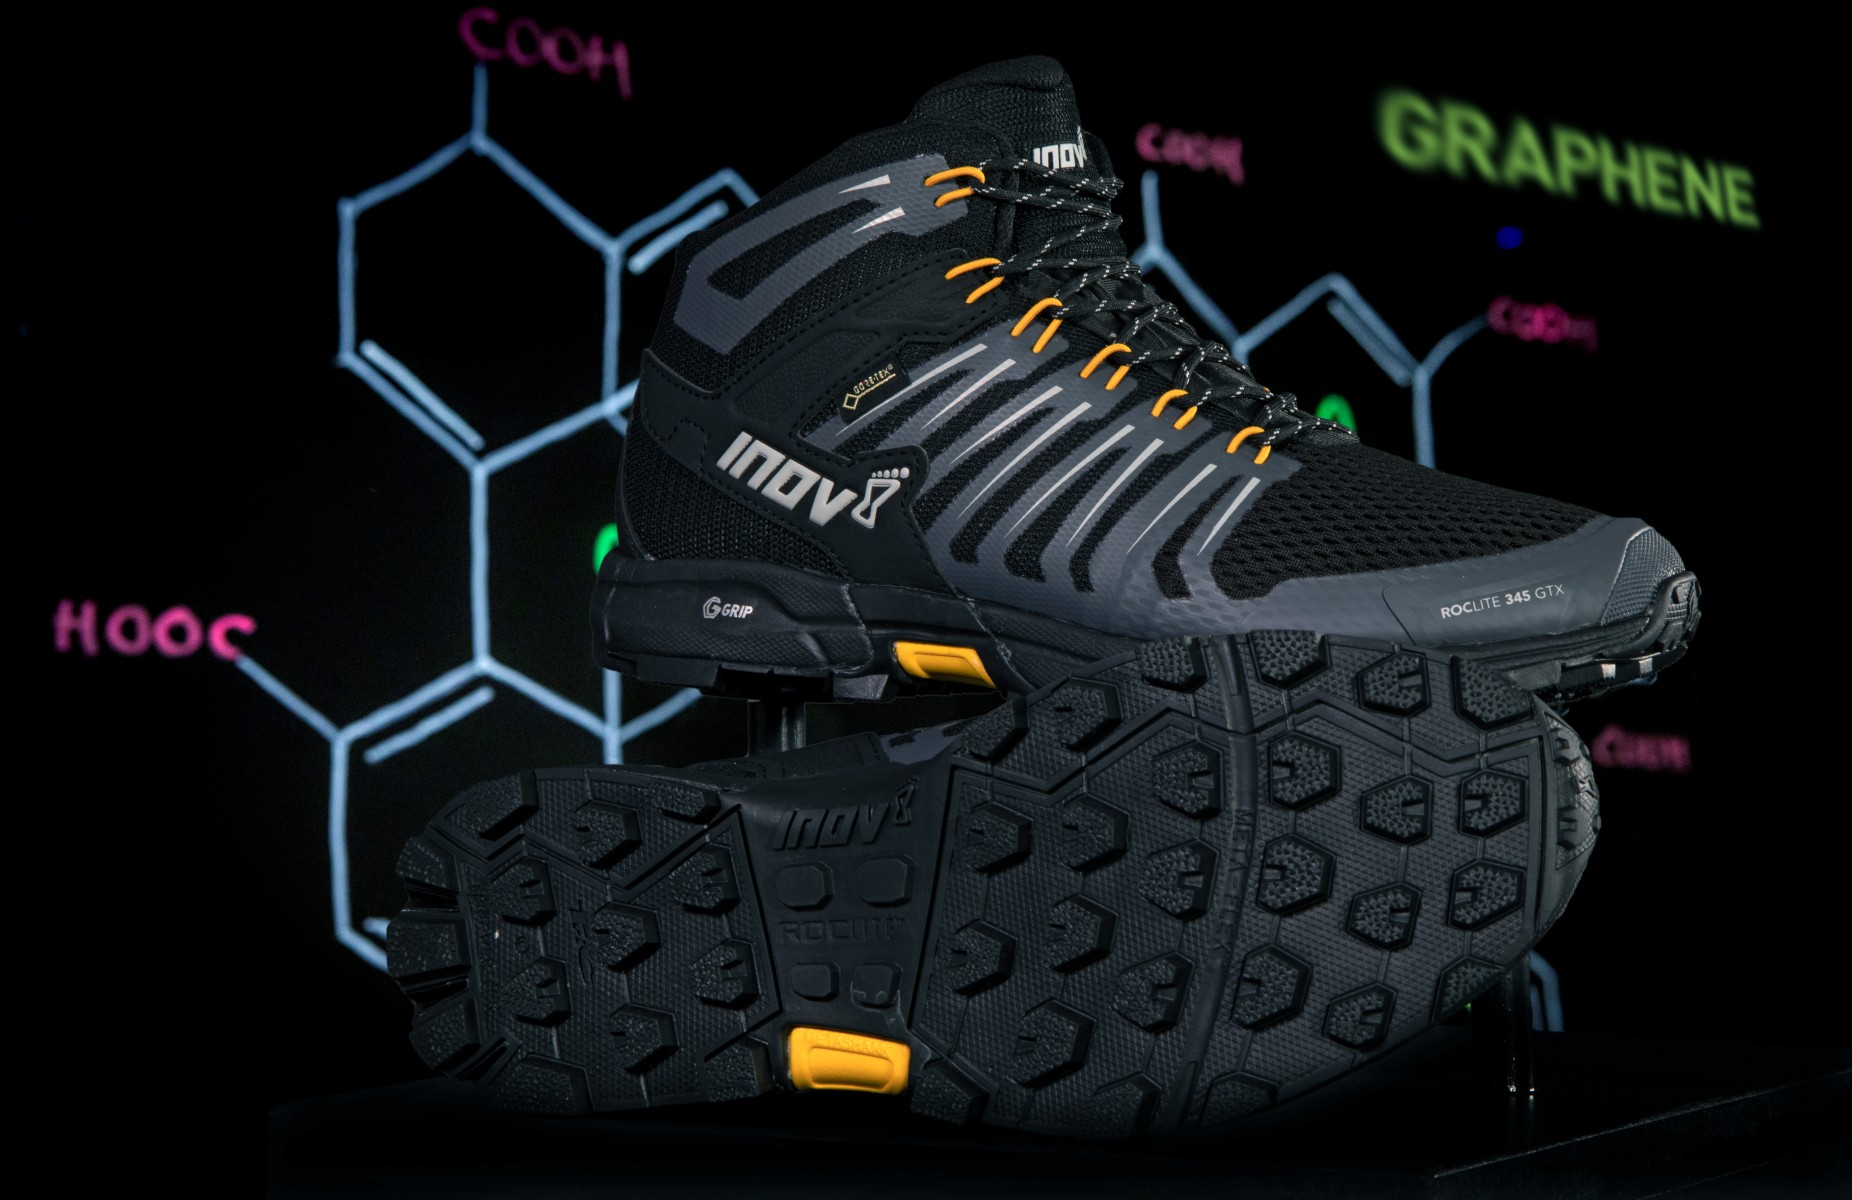 World's first ever graphene hiking boots unveiled